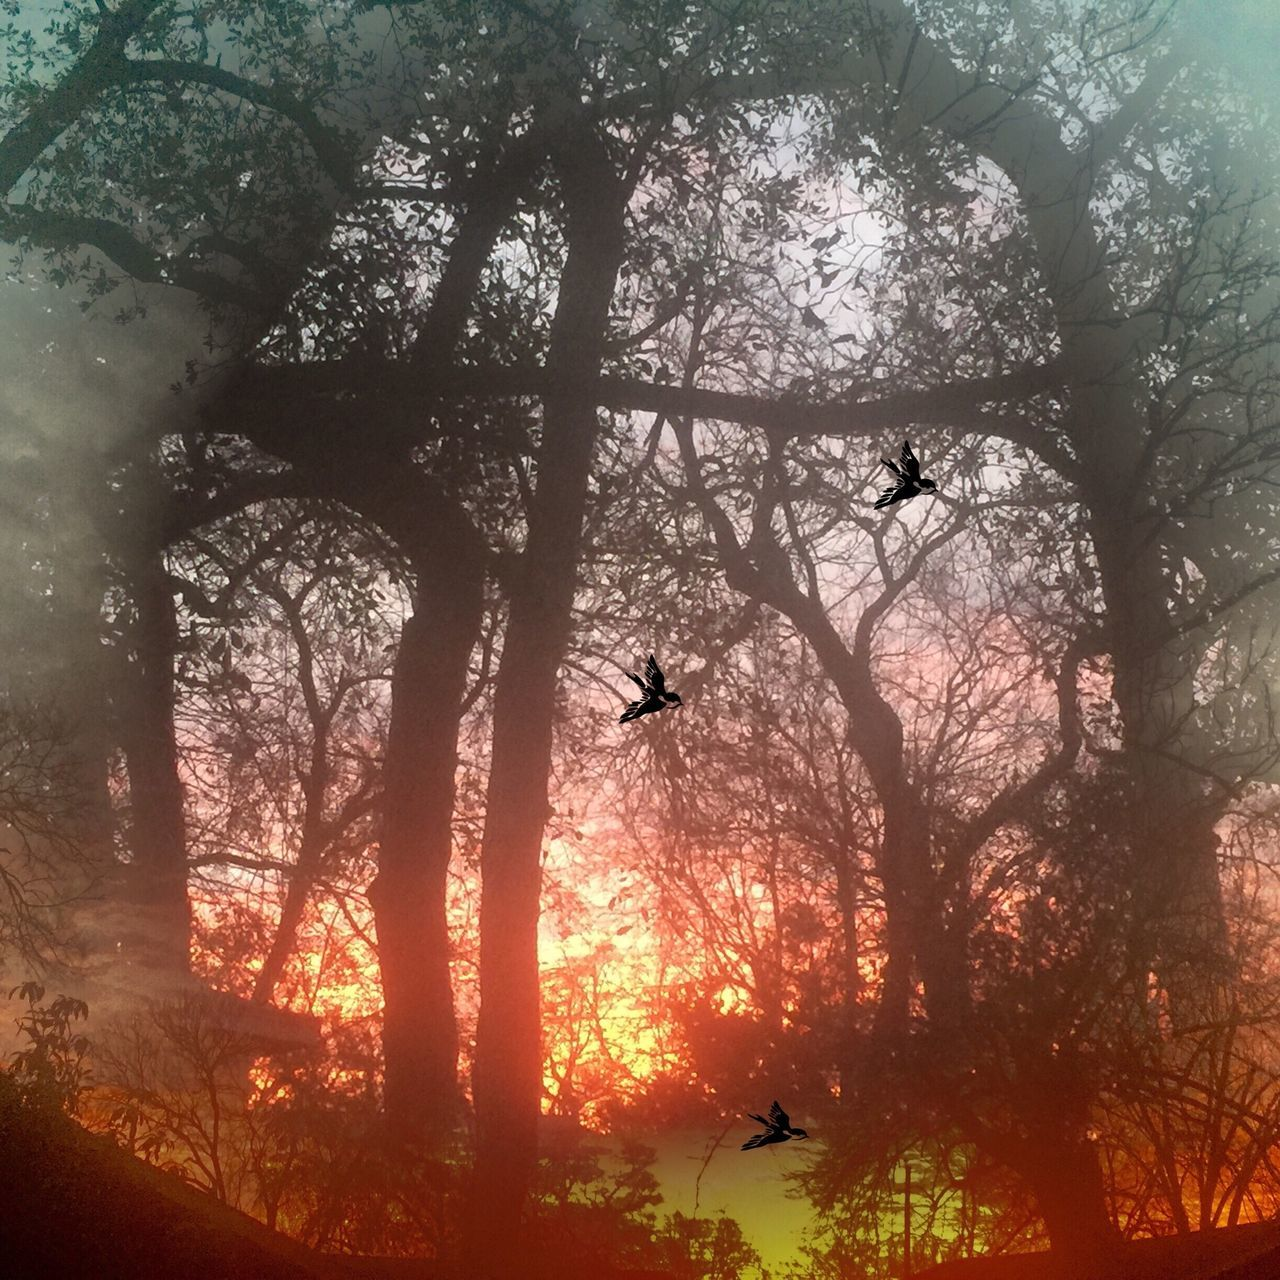 Even though we may be experiencing one of those wilderness experiences, if we keep looking up we will find His light. Sun_collection, Sky_collection, Cloudporn, Skyporn The Moment - 2015 EyeEm Awards Light Up Your Life Art Inspired By Life The Great Outdoors - 2015 EyeEm Awards EyeEm Best Shots Enjoying The Sun No Edit No Fun Tadaa Friends Streamzoo Family For My Friends That Connect The EyeEm Facebook Cover Challenge Creative Light And Shadow EyeEm Best Shots - Landscape EyeEm Masterclass Myuniquestyle Sunrise_sunsets_aroundworld Sky And Trees Looking To The Other Side Lookingup Huggingatree  Tree Hugger Eye4photography  CreativePhotographer From Where I Stand